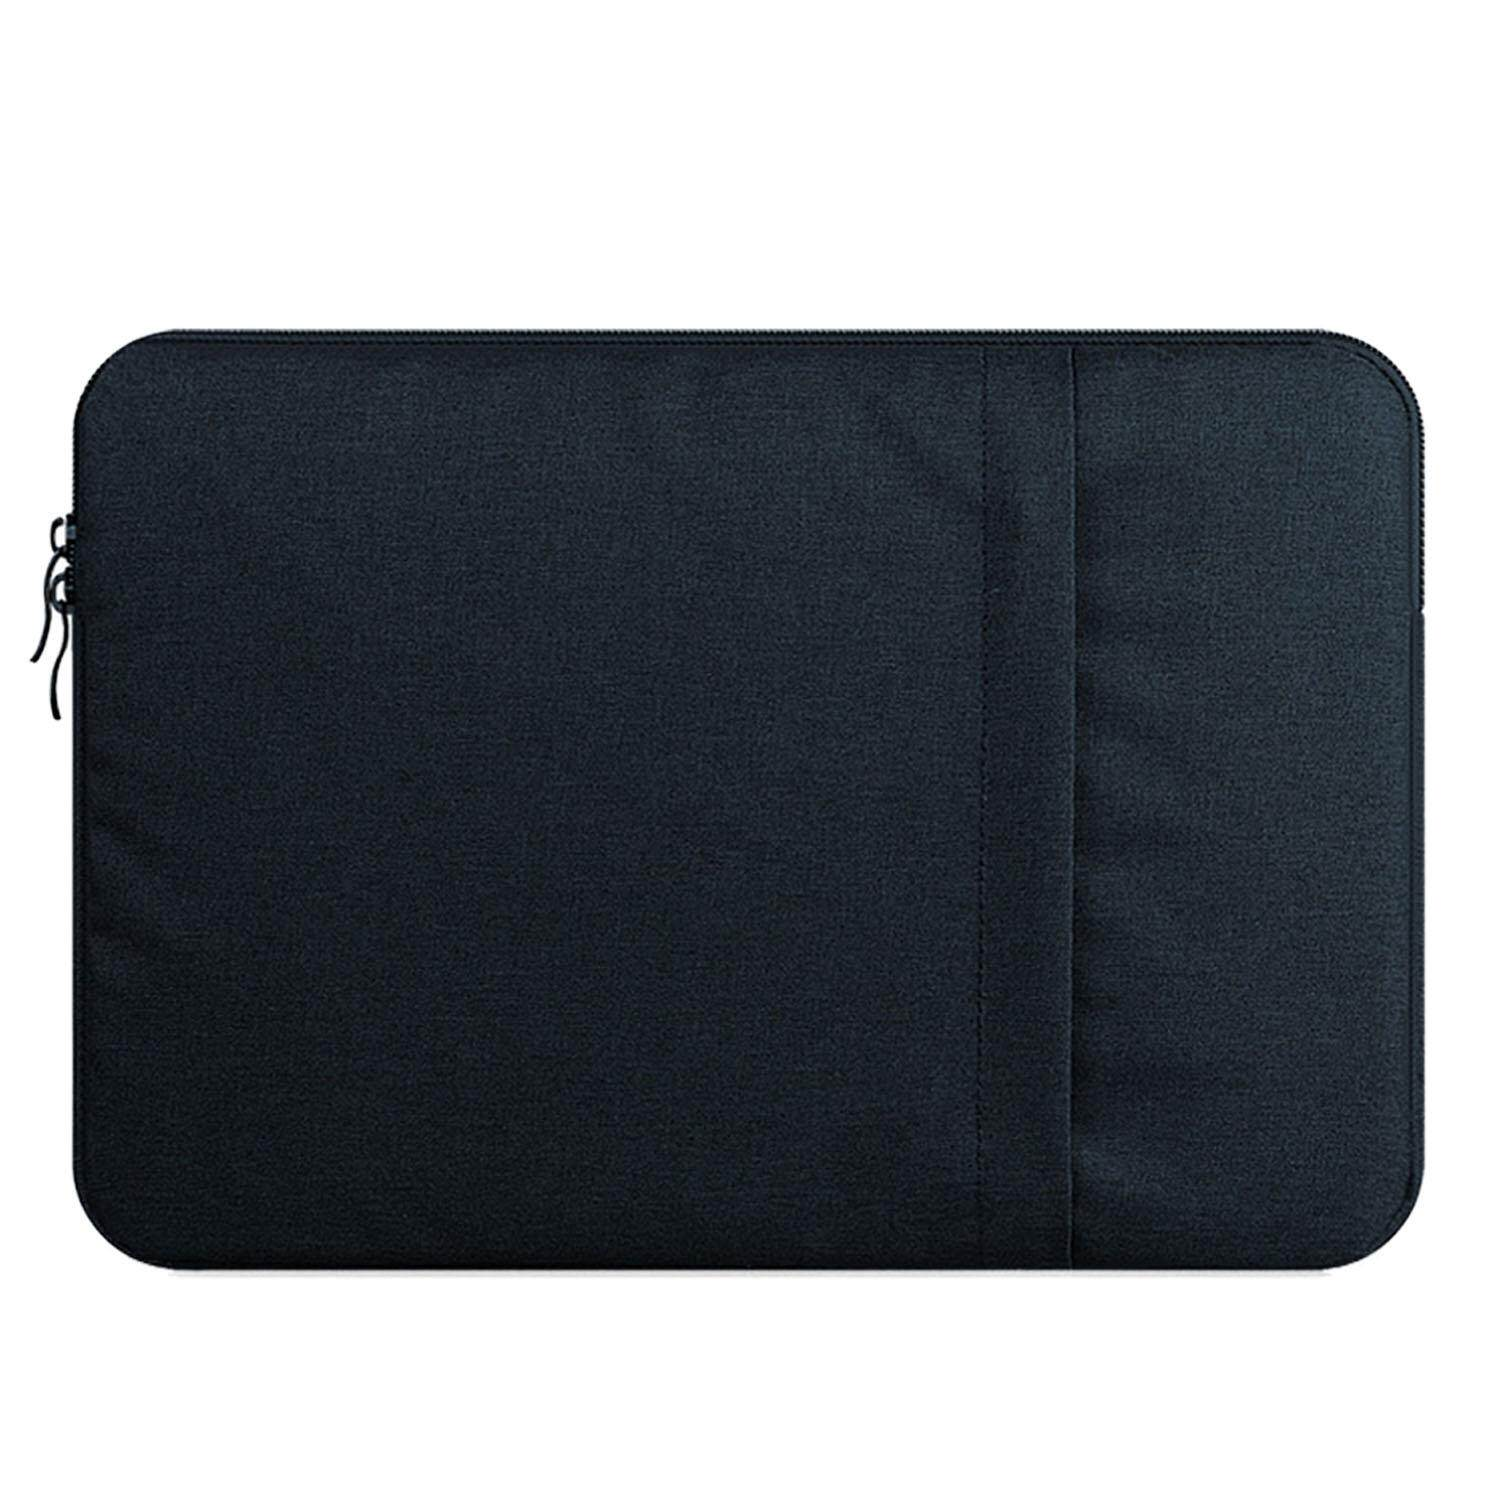 Portable Notebook Laptop Sleeve Handbag Protective Case Bag with Side Pocket for MacBook Air Lenovo Dell Acer 11 Inch